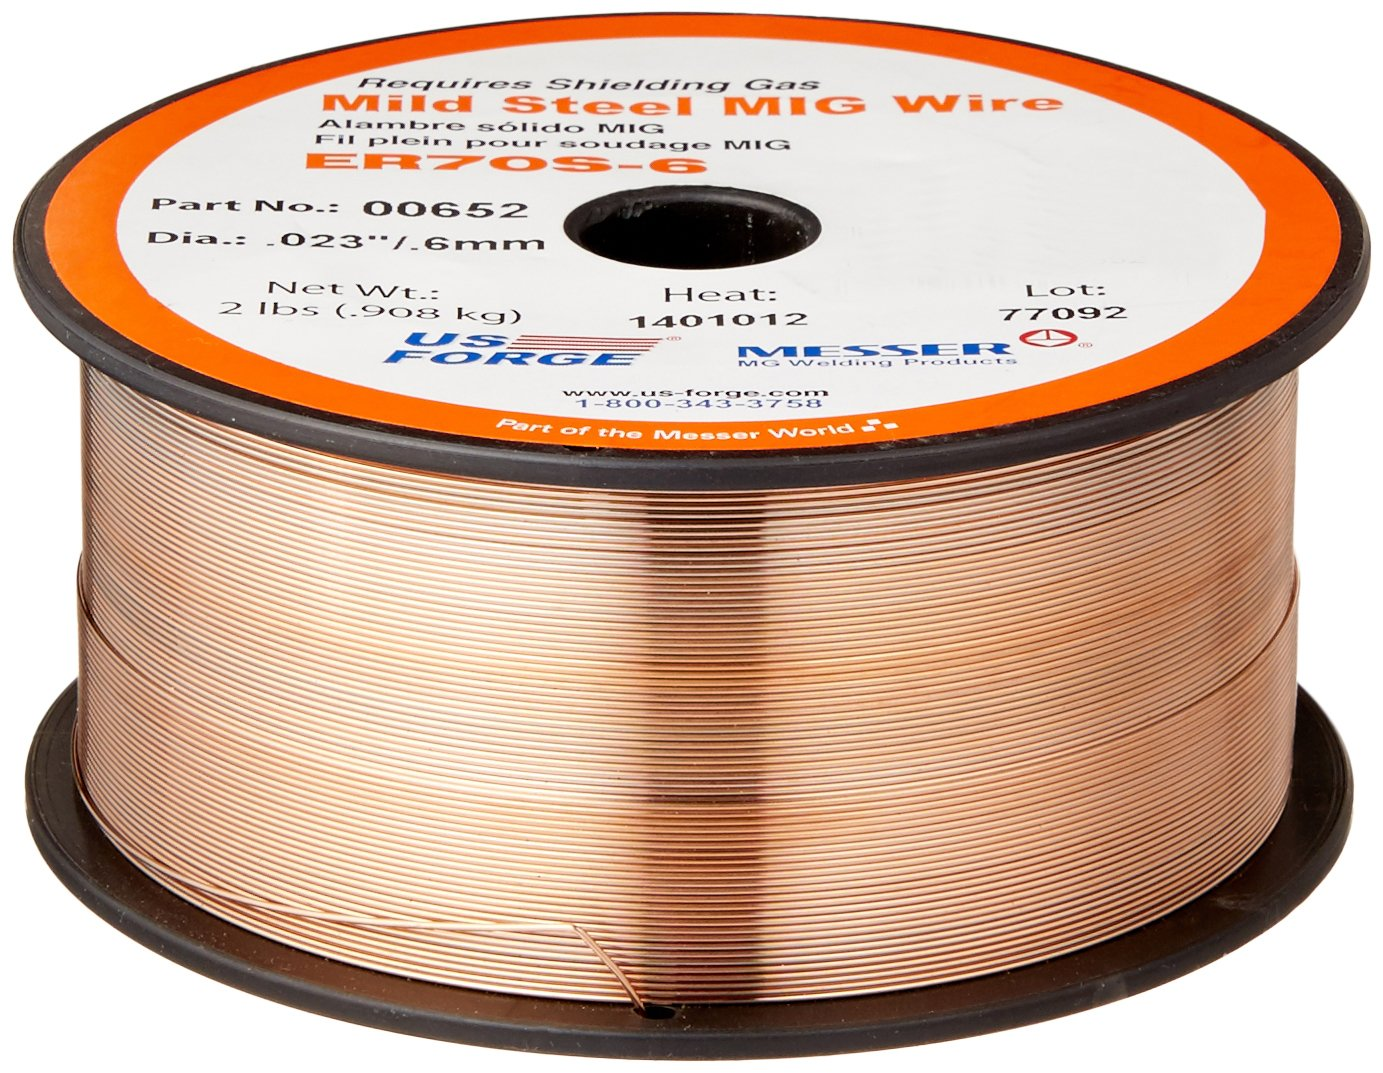 US Forge Welding Solid Mild Steel MIG Wire .023 2-Pound Spool #00652